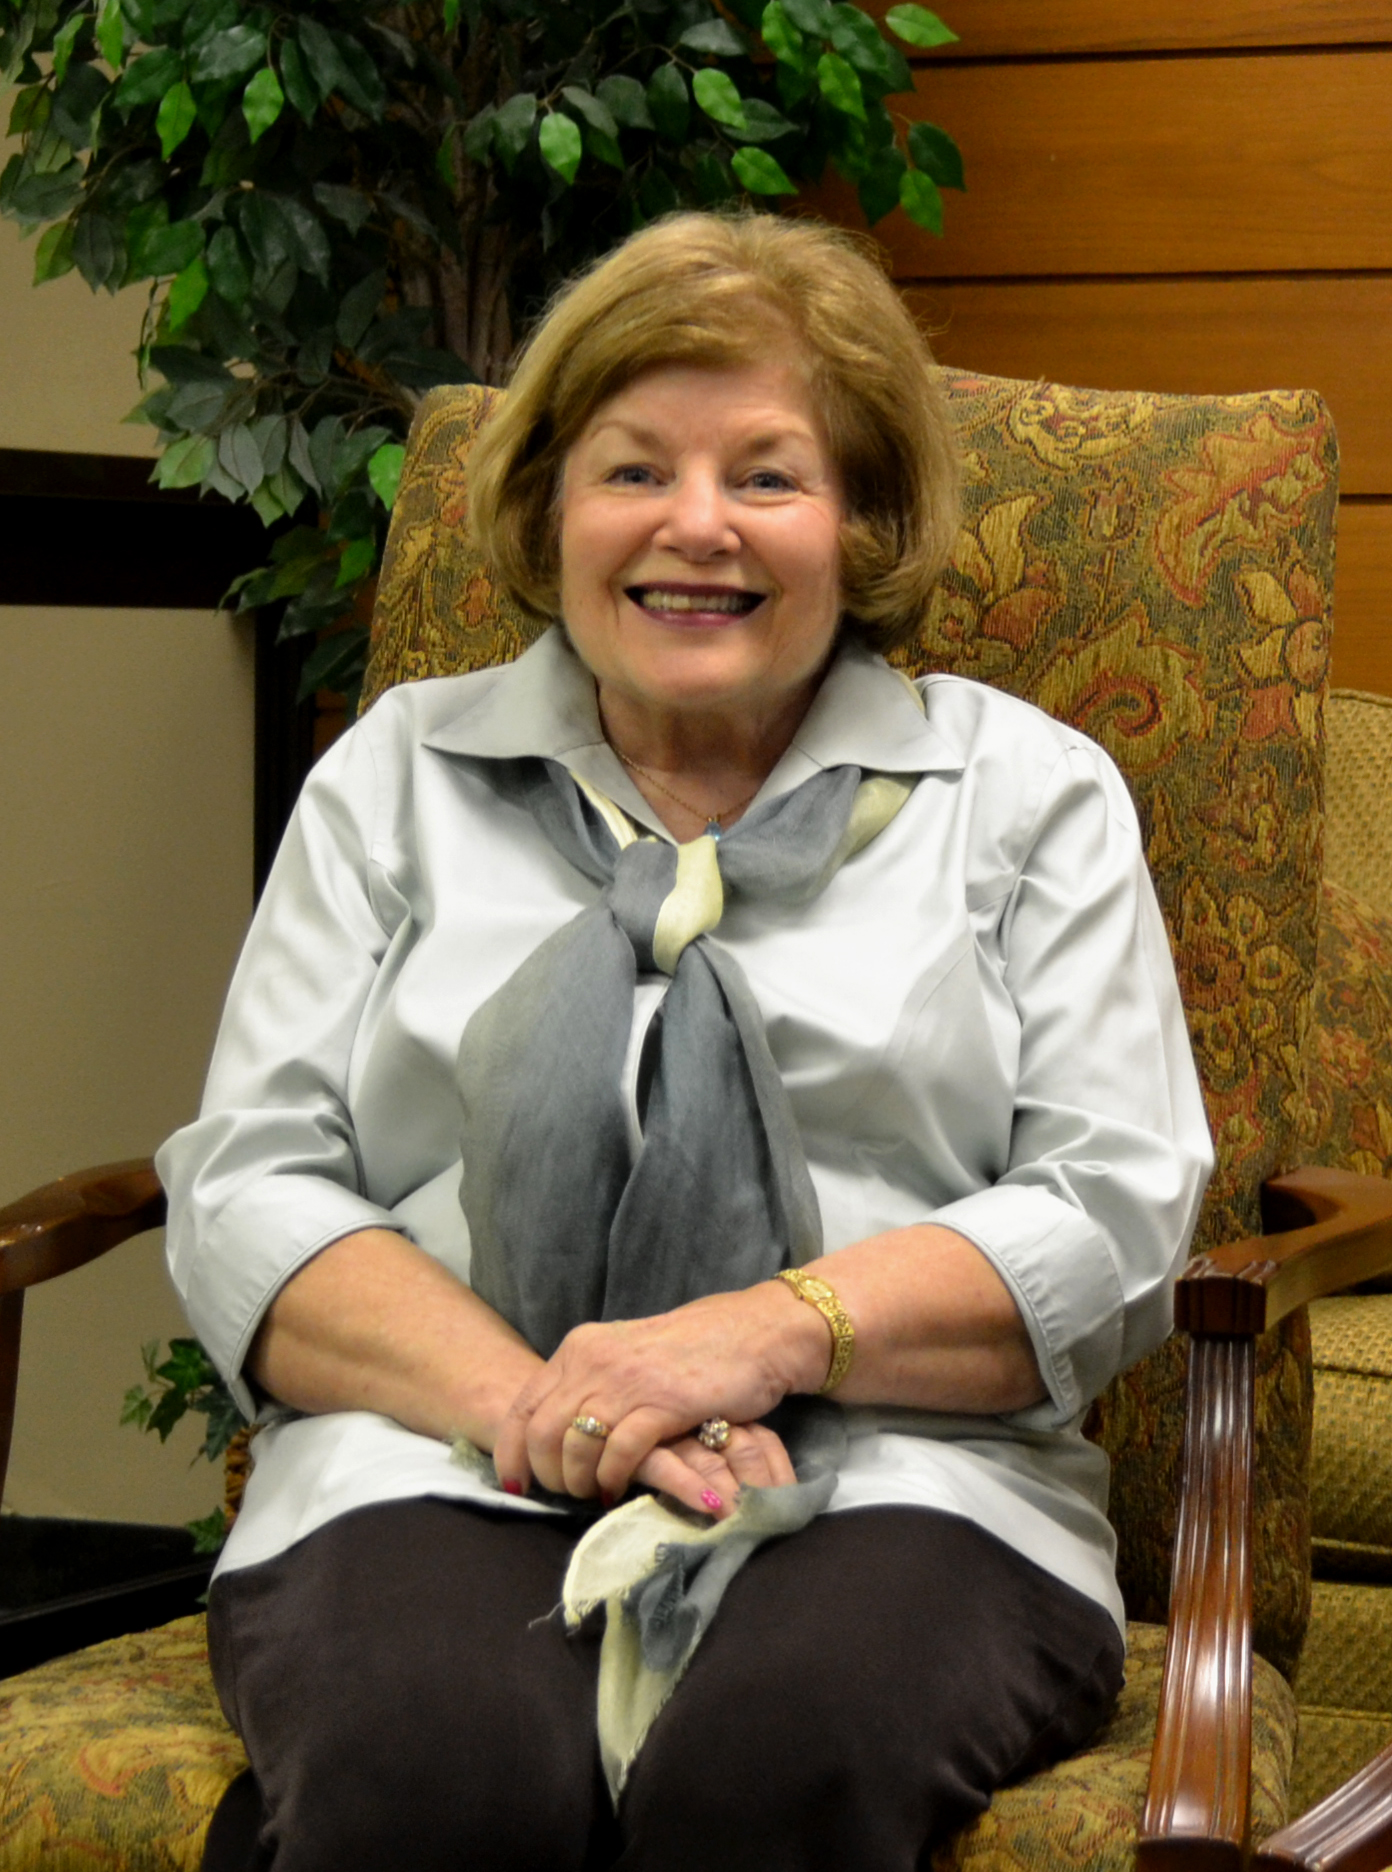 Dr. Janie Allen-Bradley has served Delta State as a dedicated promoter of literacy. As a retired educator, her passion for literacy is carried forward.